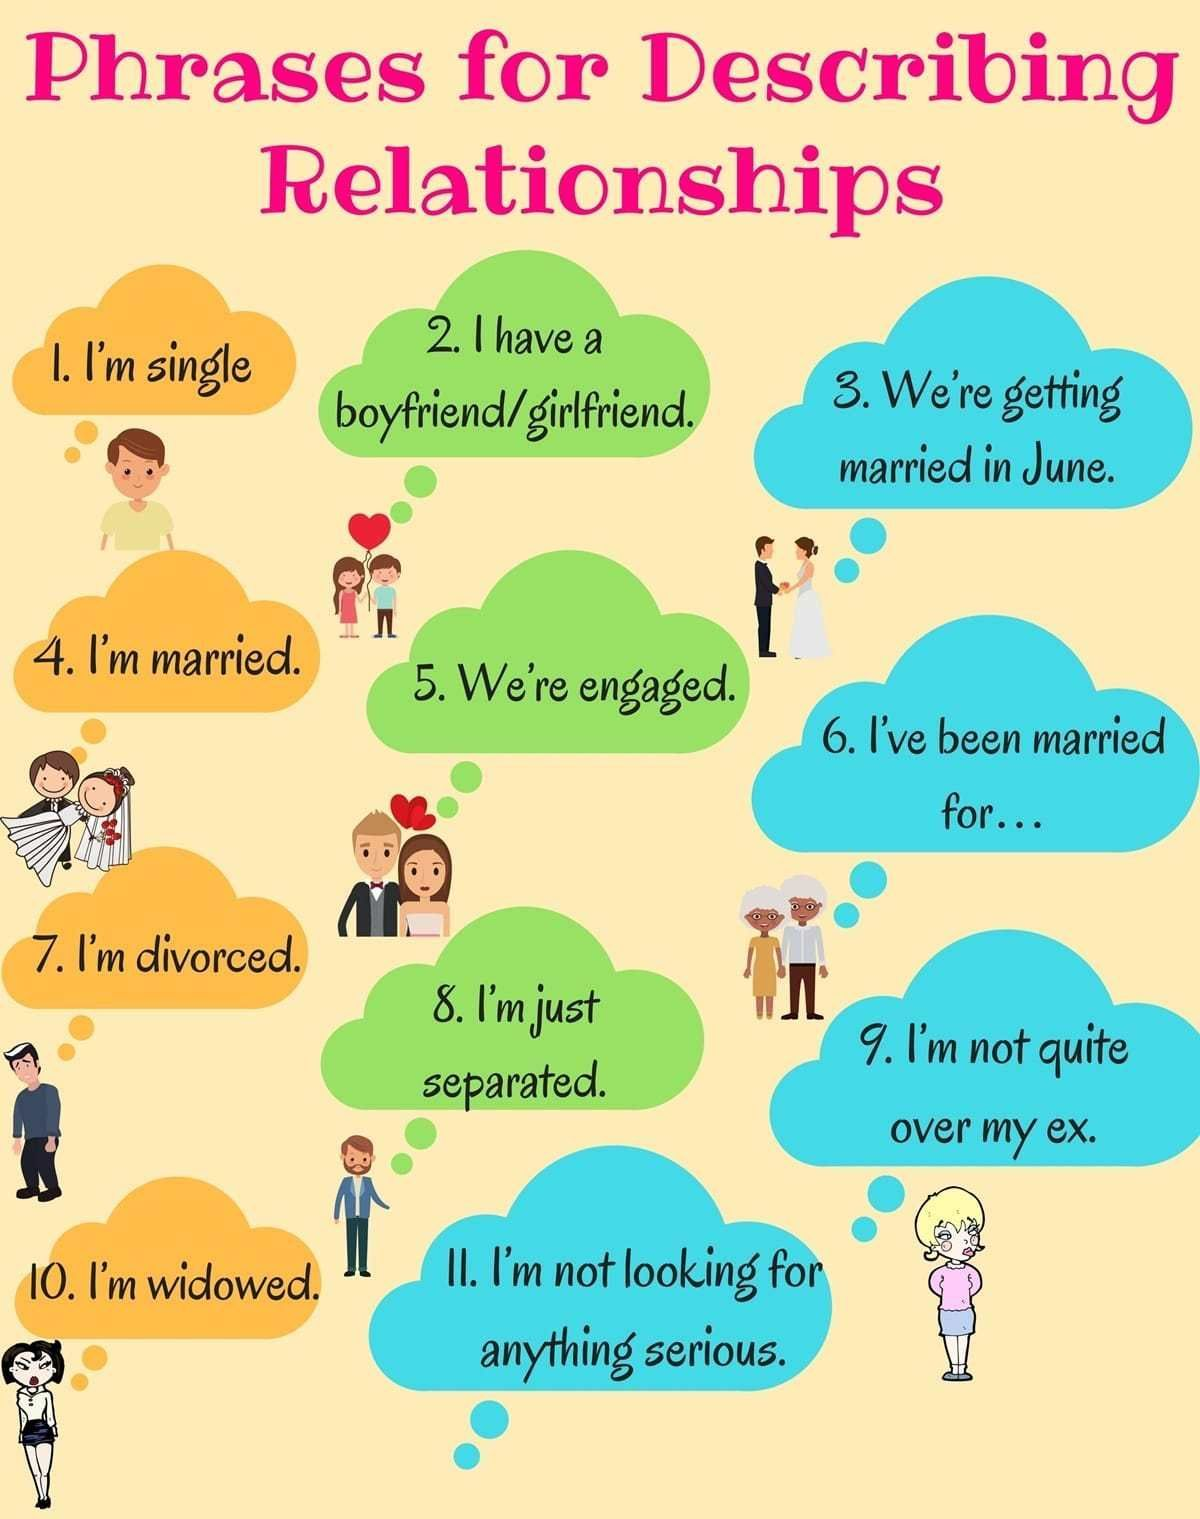 Words And Phrases Used To Describe Relationships In